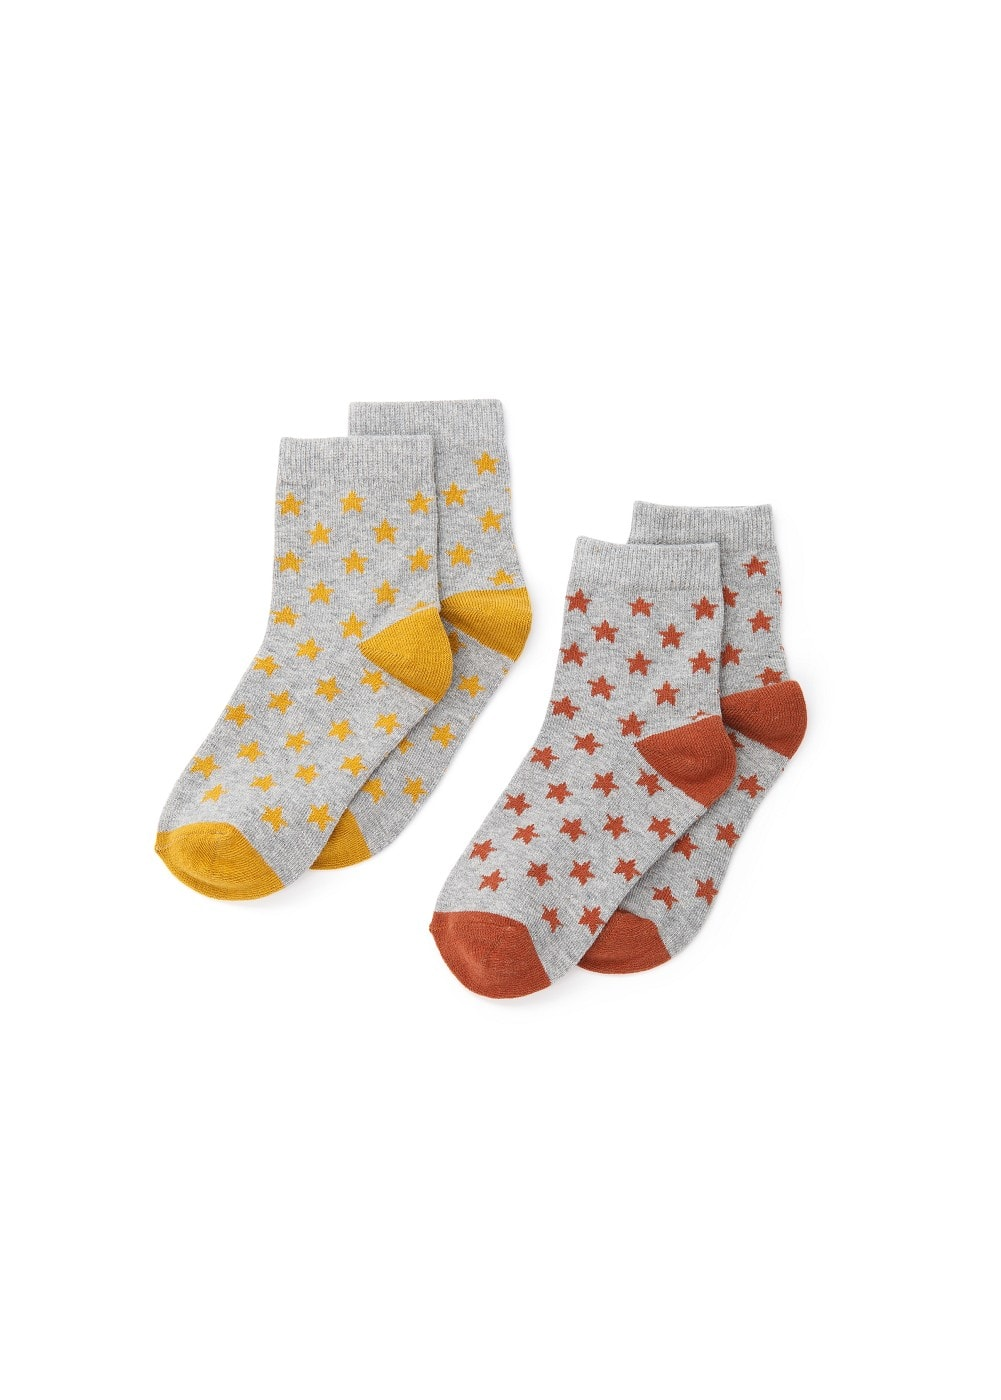 2 pack star print socks